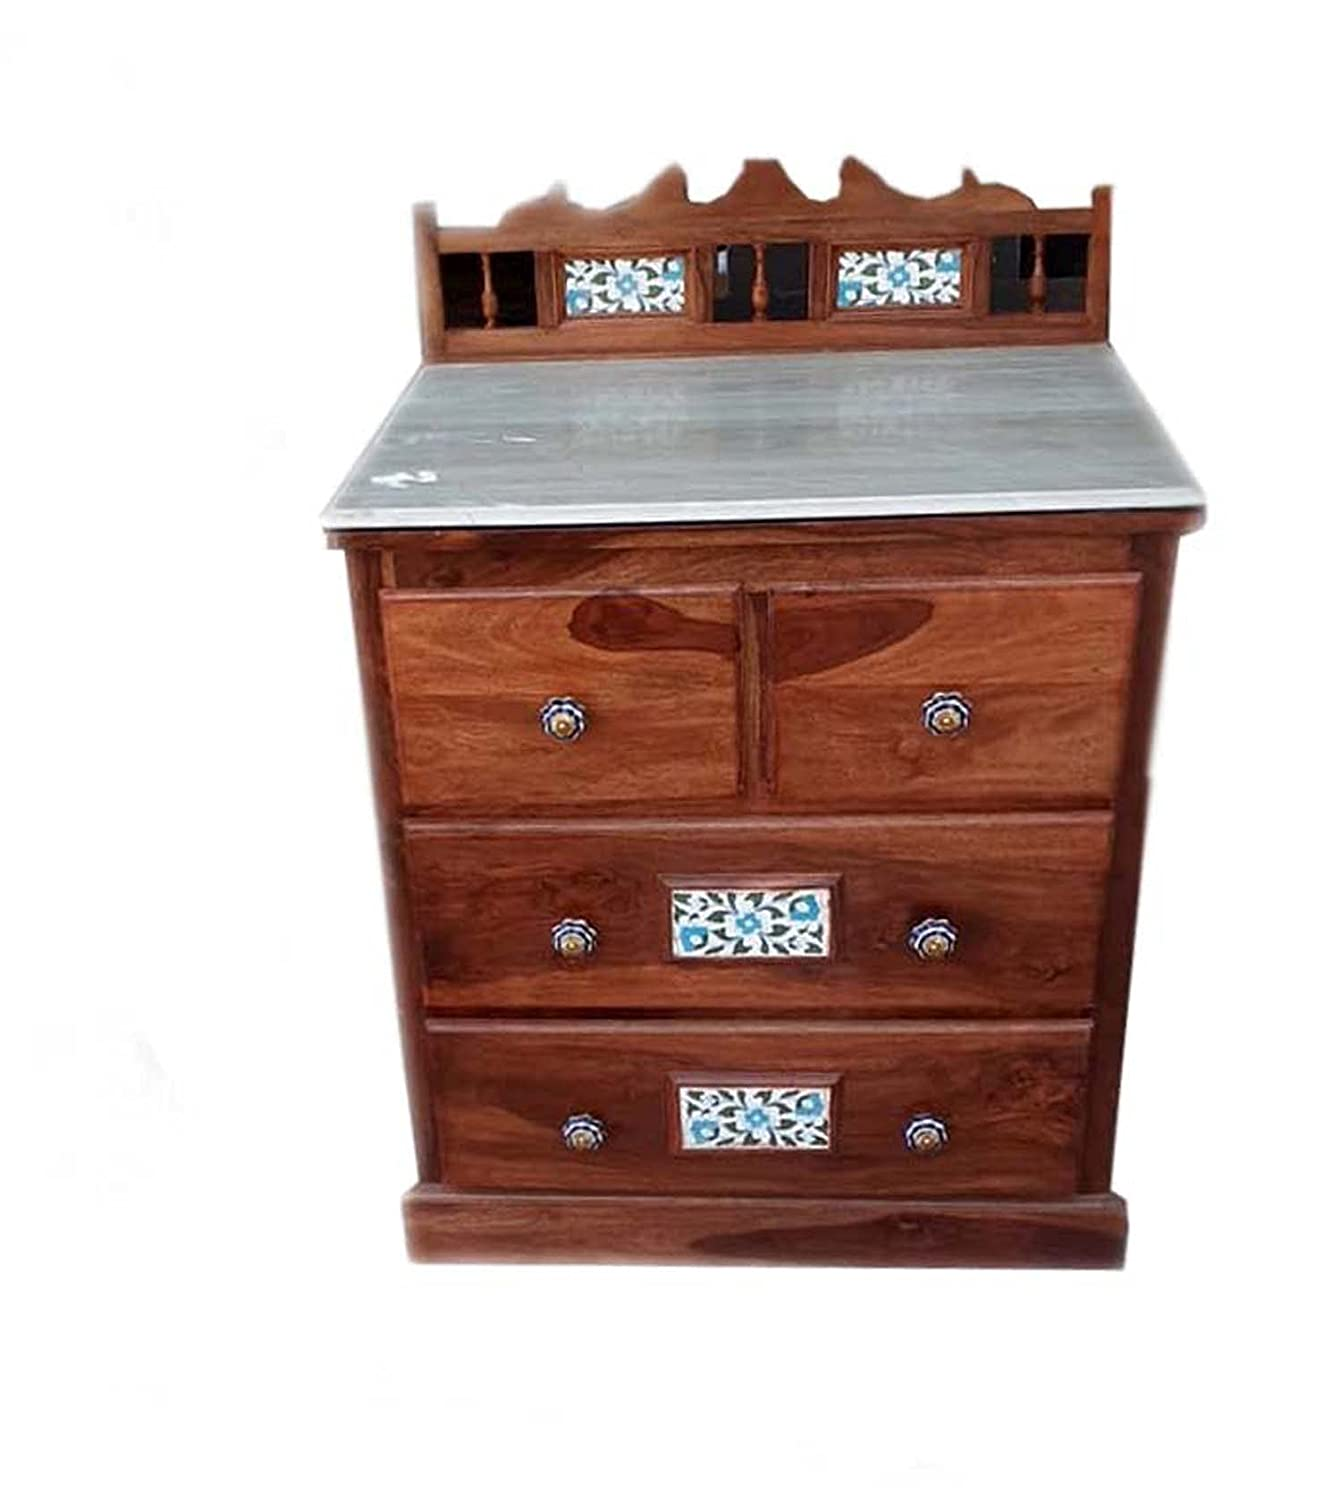 Exclusive Solid Rosewood (Sheesham) Cabinet/Chest of Drawer with Marble  Top, Lacquer Finish Honey Brown, Size: 32x30x24 inch